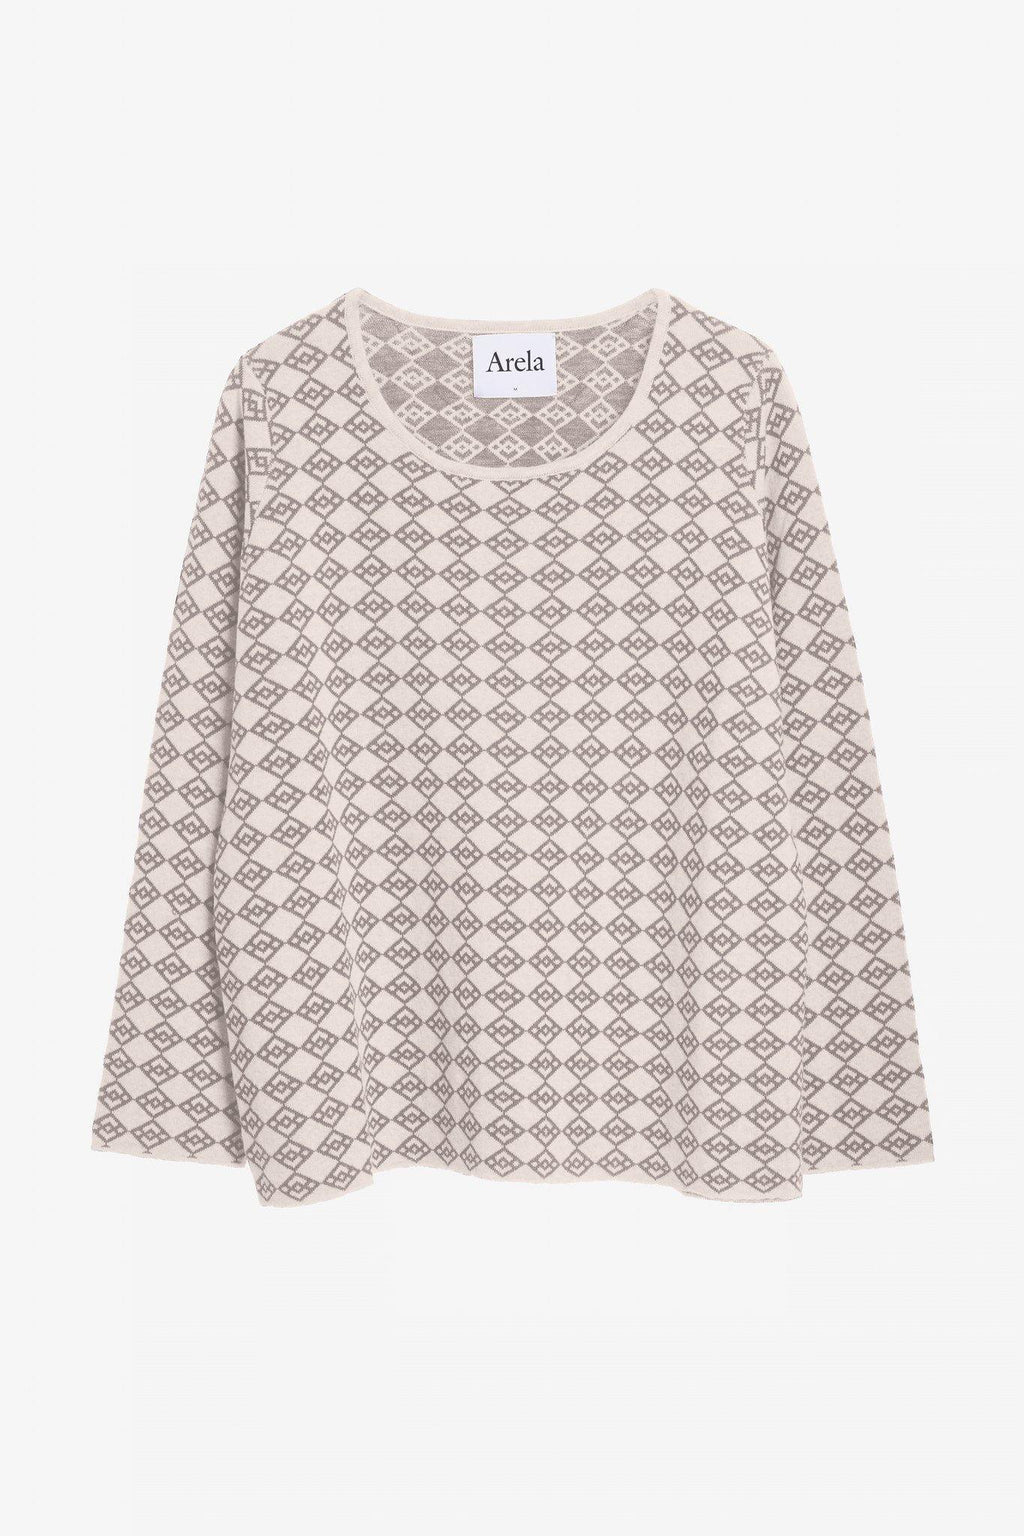 ARELA, Edie Symbol Sweater - Alava Shop